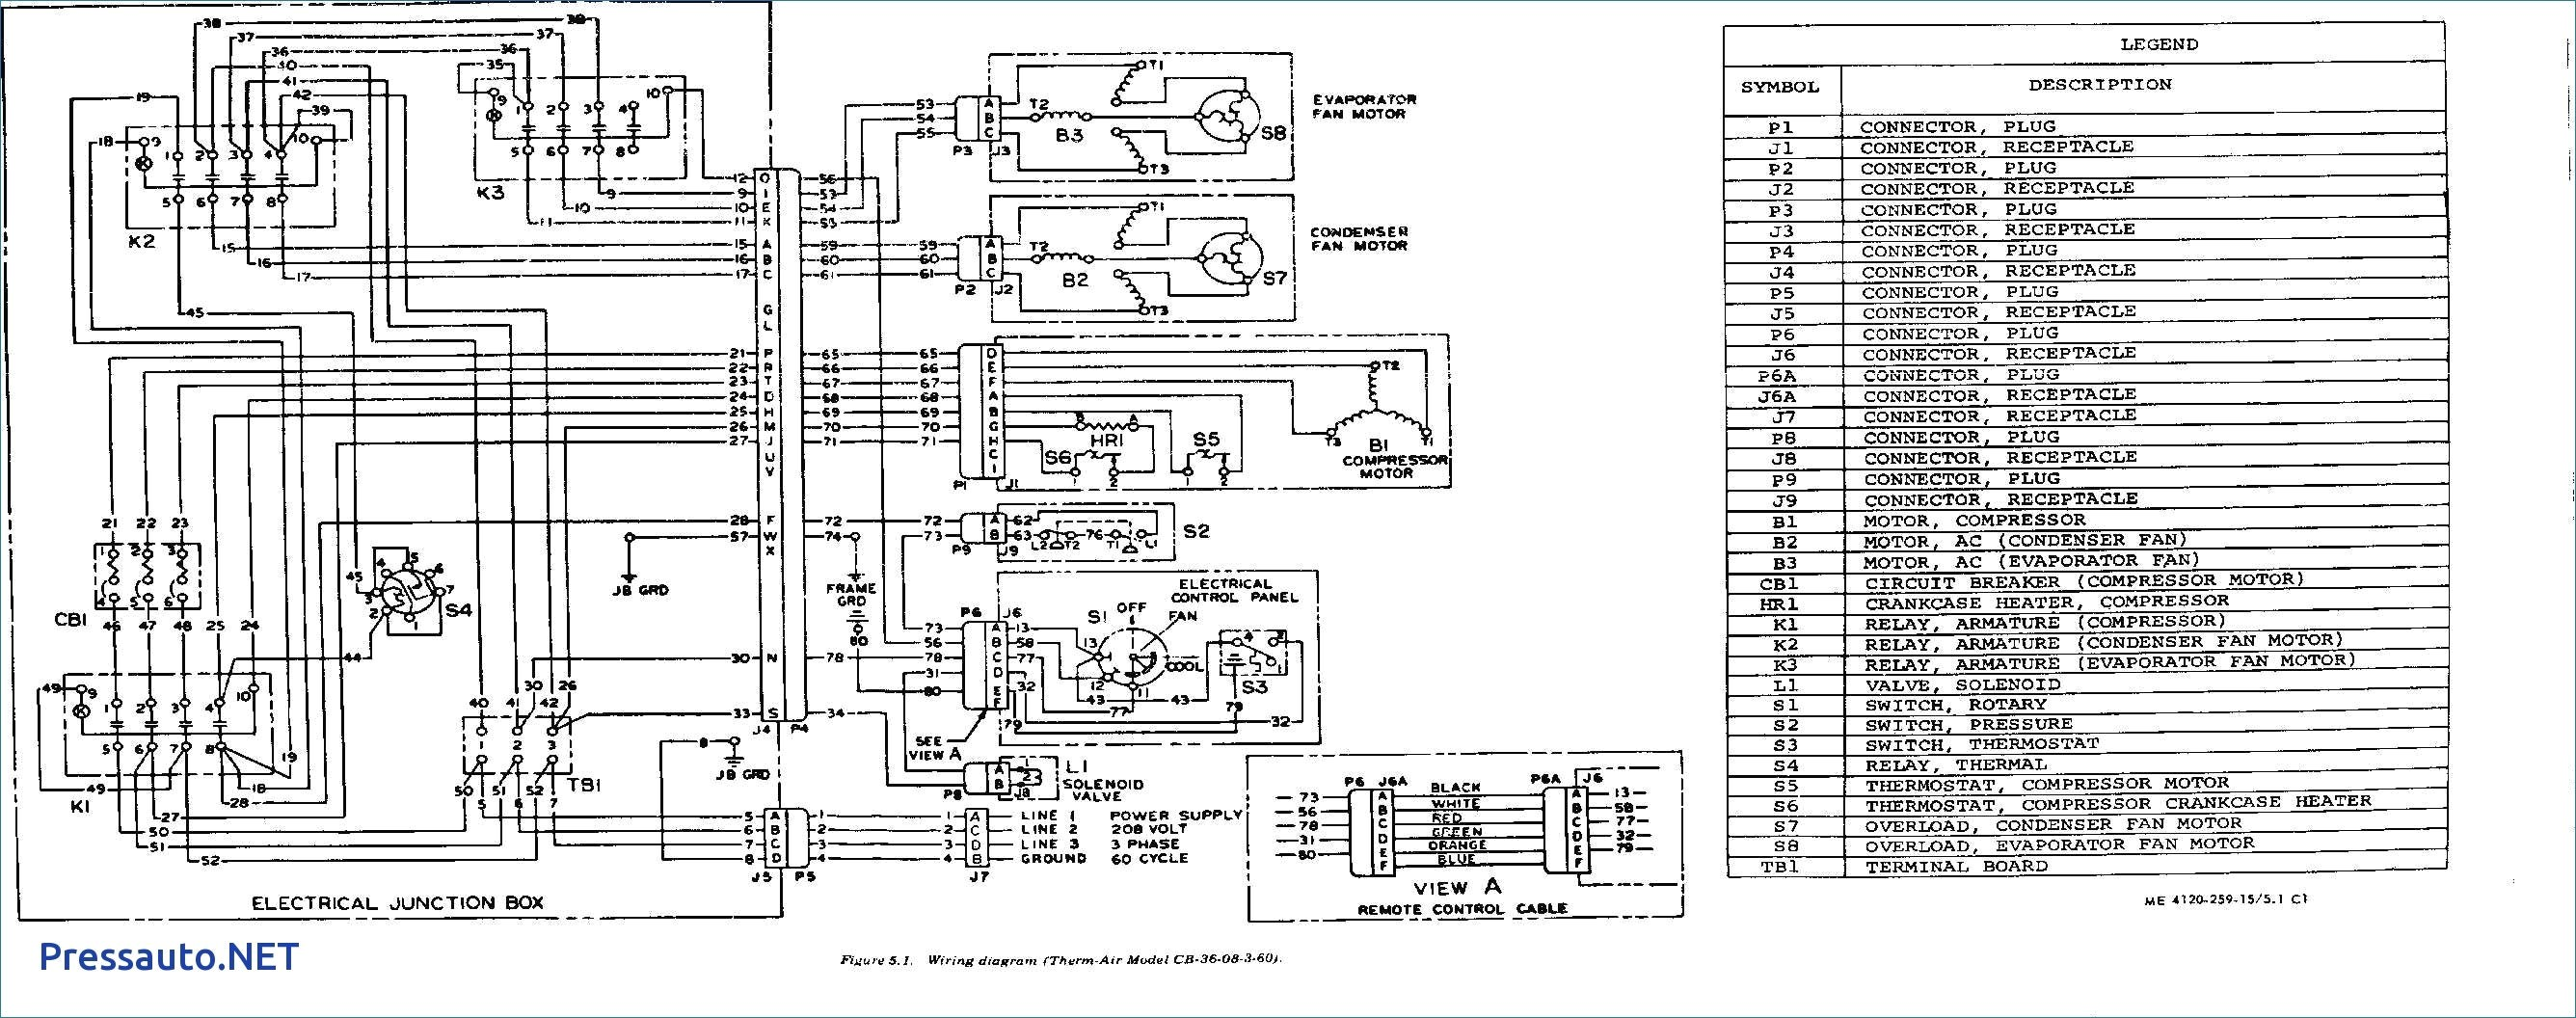 Trane Xv80 Furnace Wiring Diagram 220 Electric Heat Diagrams Commercial Hvac Thermostat